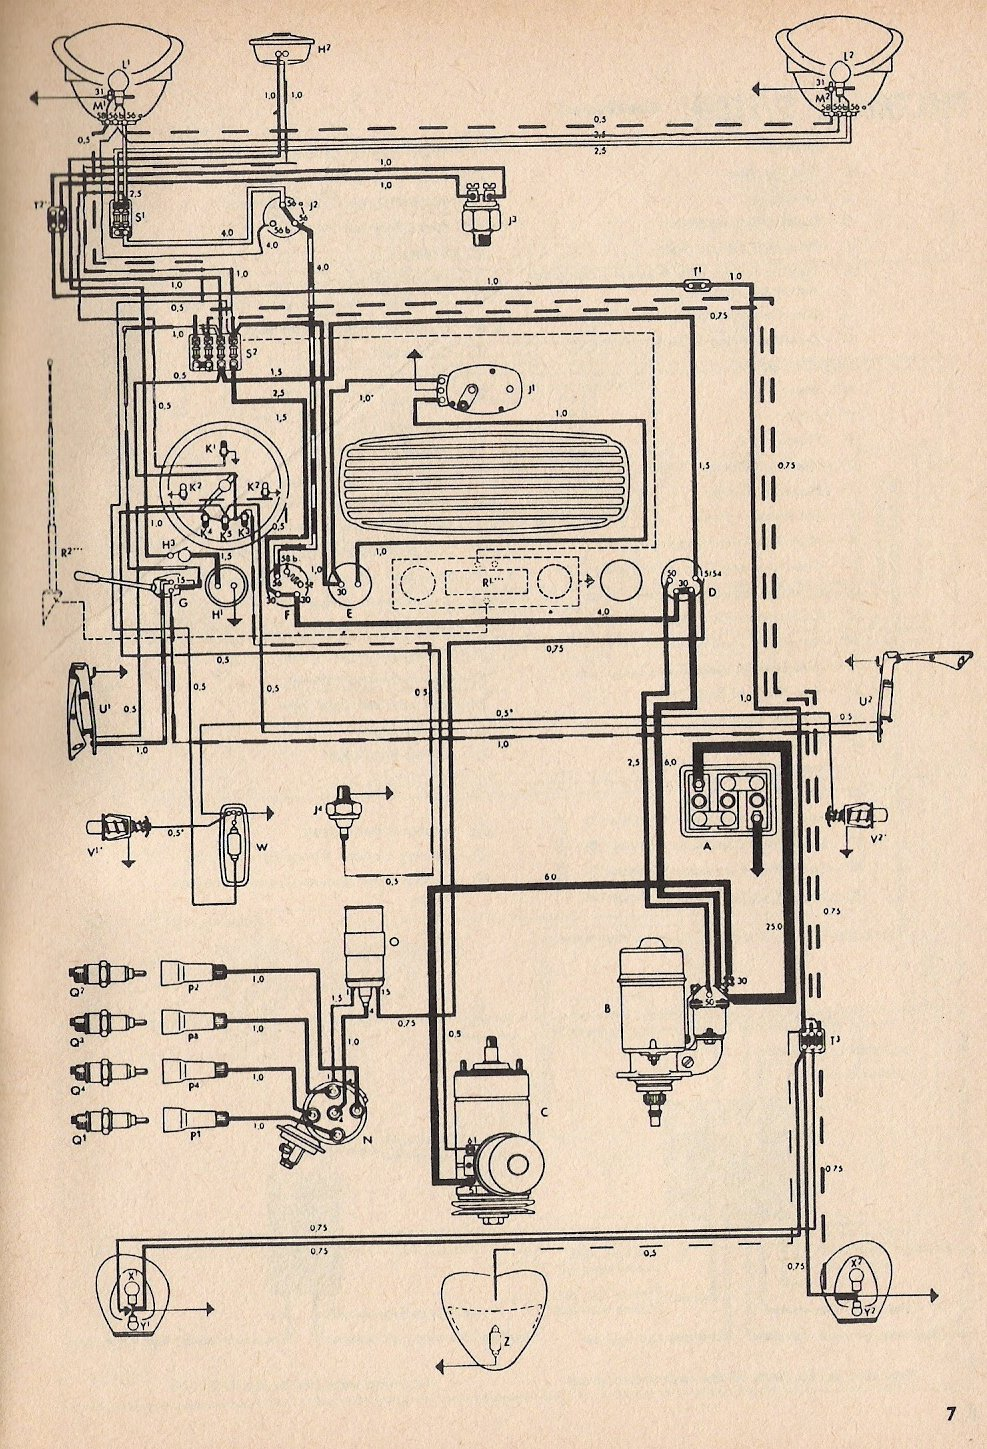 Bus Wiring as well Wiring together with Baybus besides Bus Fuse together with Bug Key. on 1976 vw beetle wiring diagram